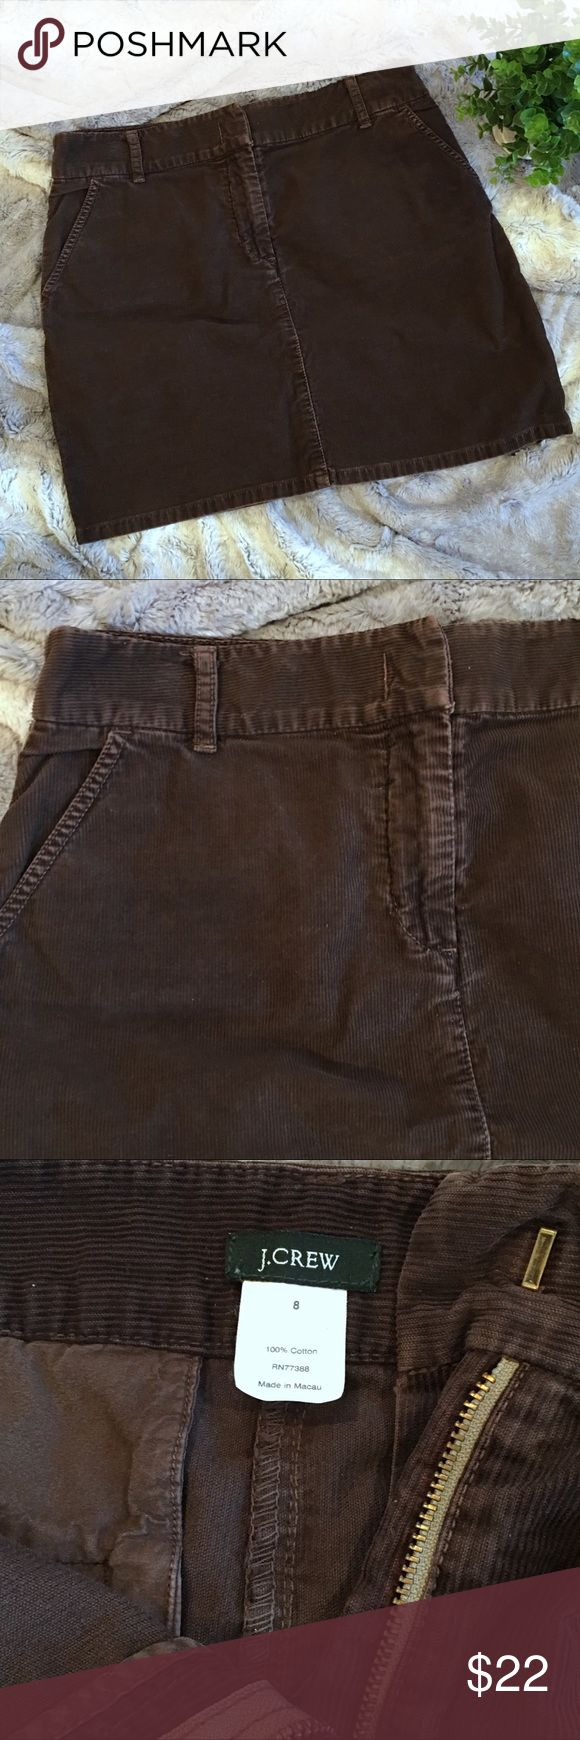 """J. Crew chocolate brown corduroy mini skirt 8 Chocolate brown corduroy skirt from J.Crew. 100% cotton. Front and back pockets, belt loops. In excellent condition. Perfect with a sweater and tights and boots! Size 8 Waistband 16.25"""" across Hip 20"""" across Length 17"""" J. Crew Skirts Mini"""